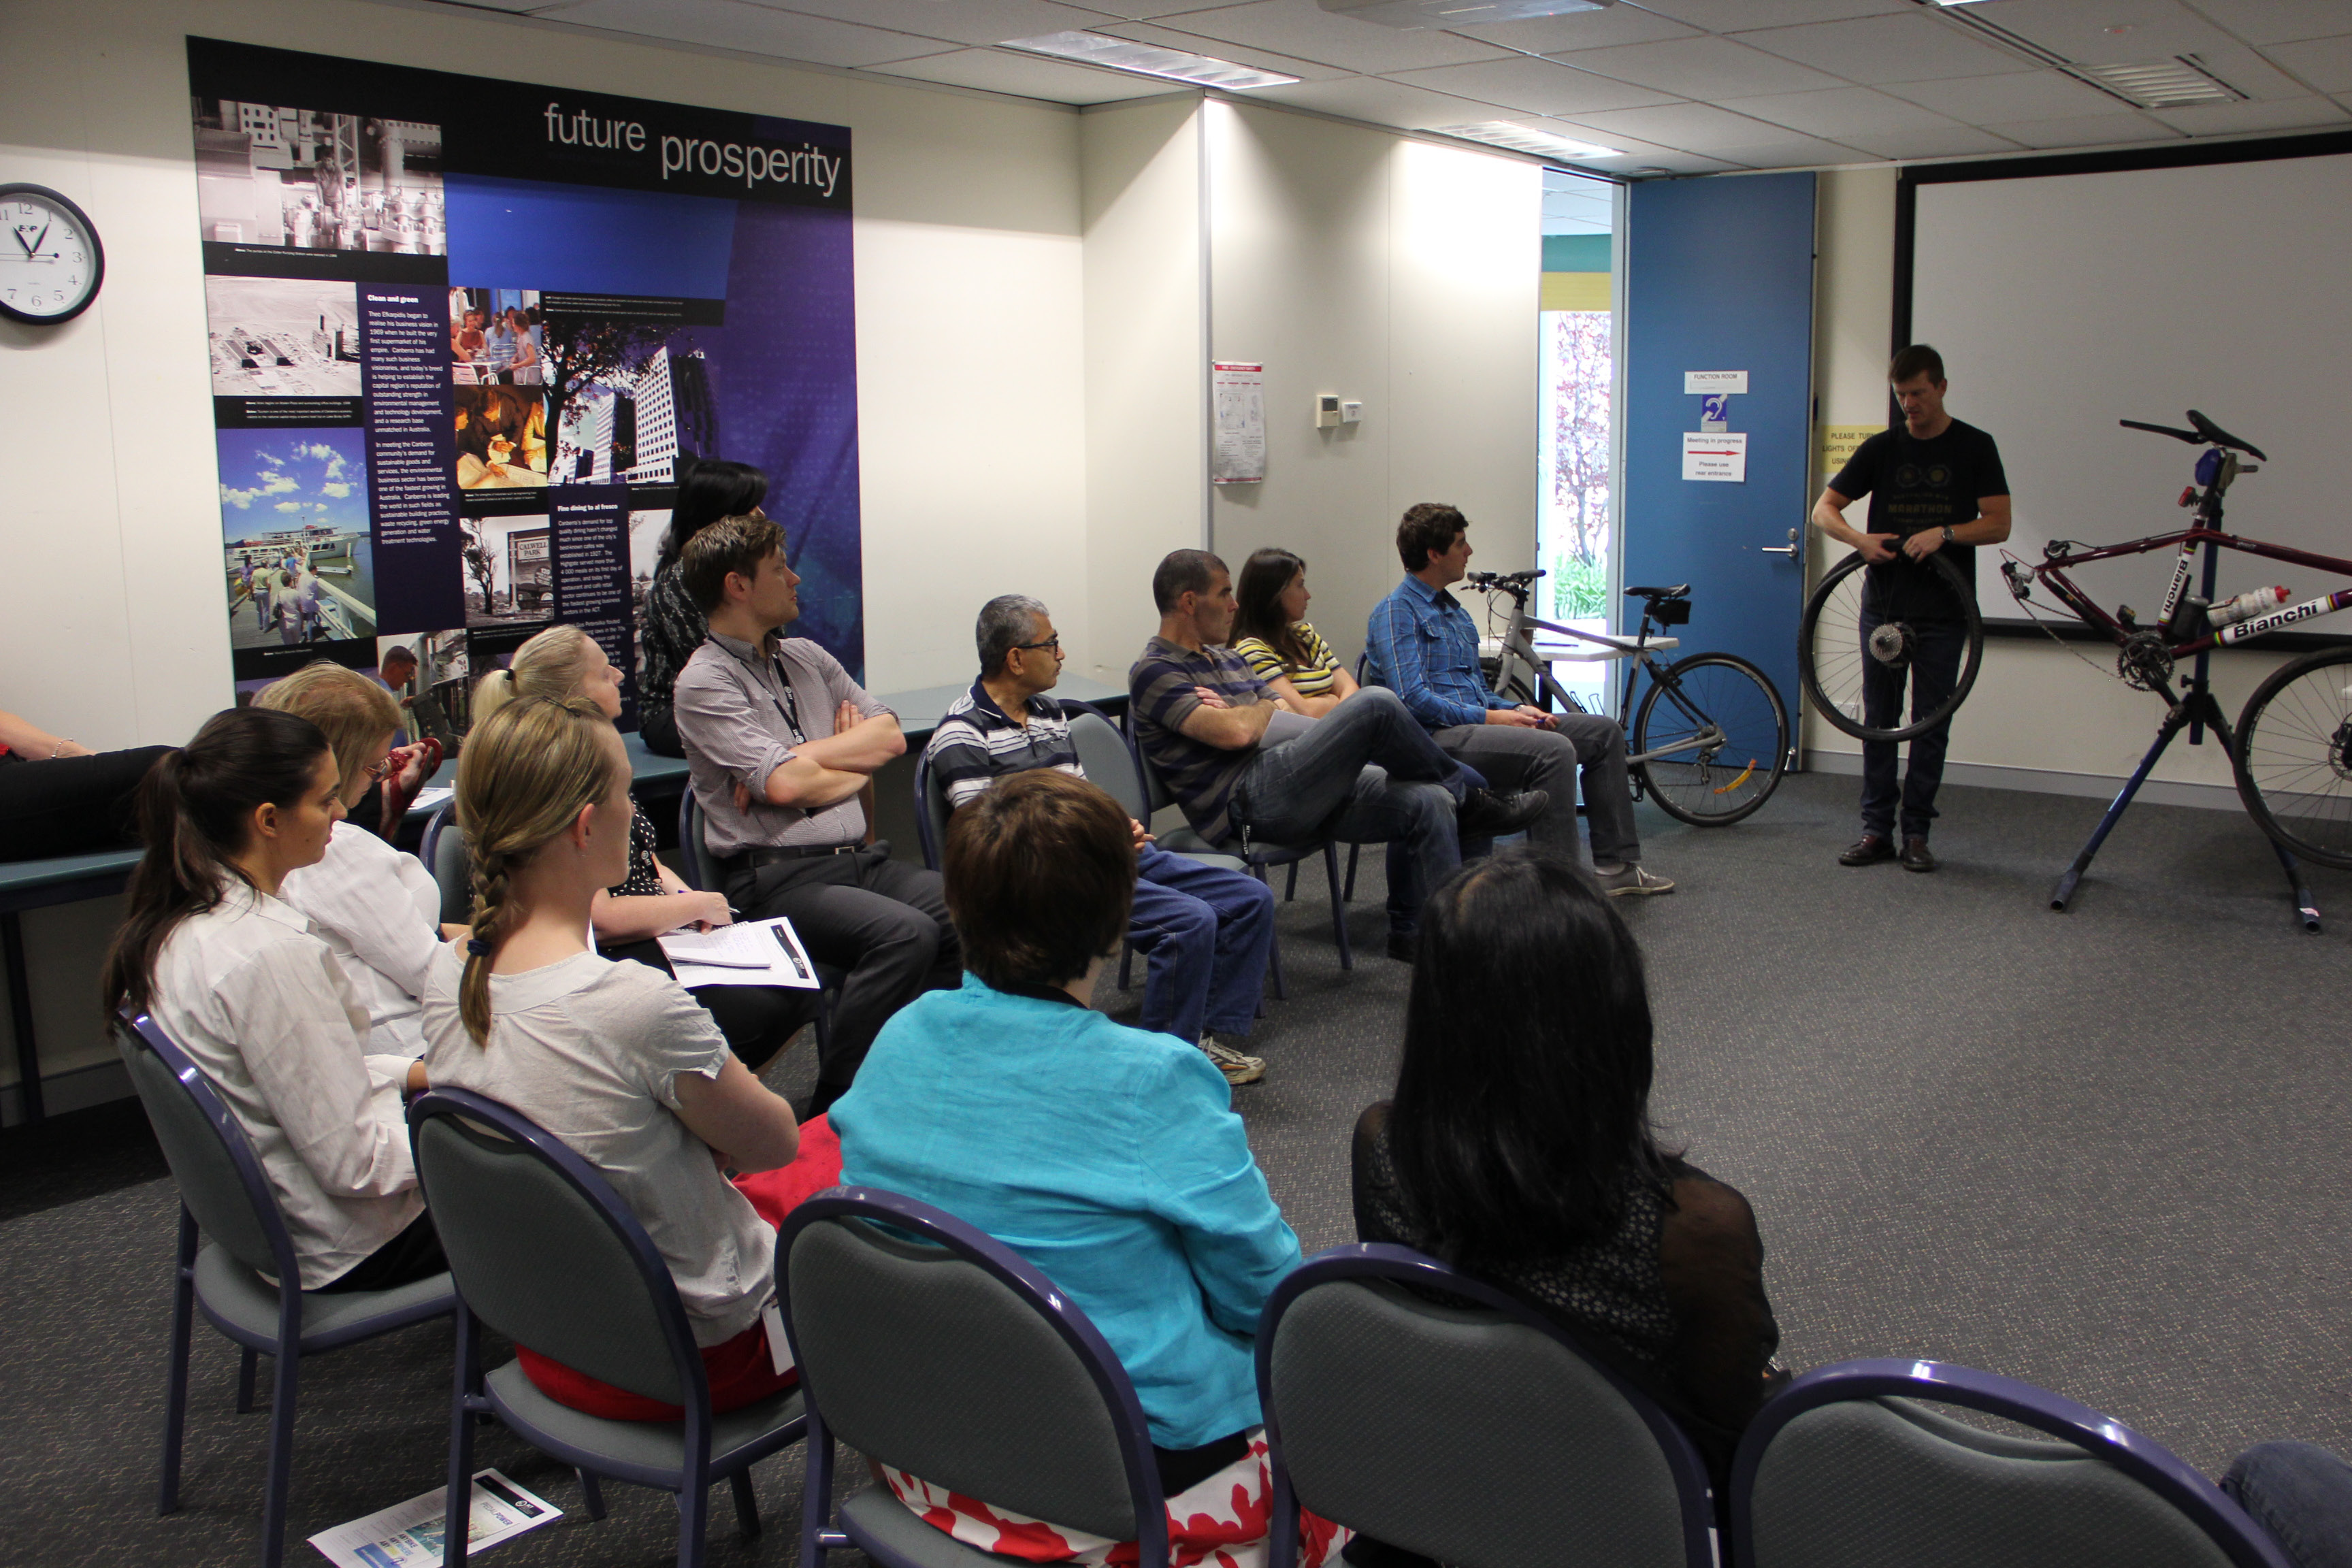 Members of staff watching a trainer with a dismantled bicycle as a prop explaining bike maintenance and road safety